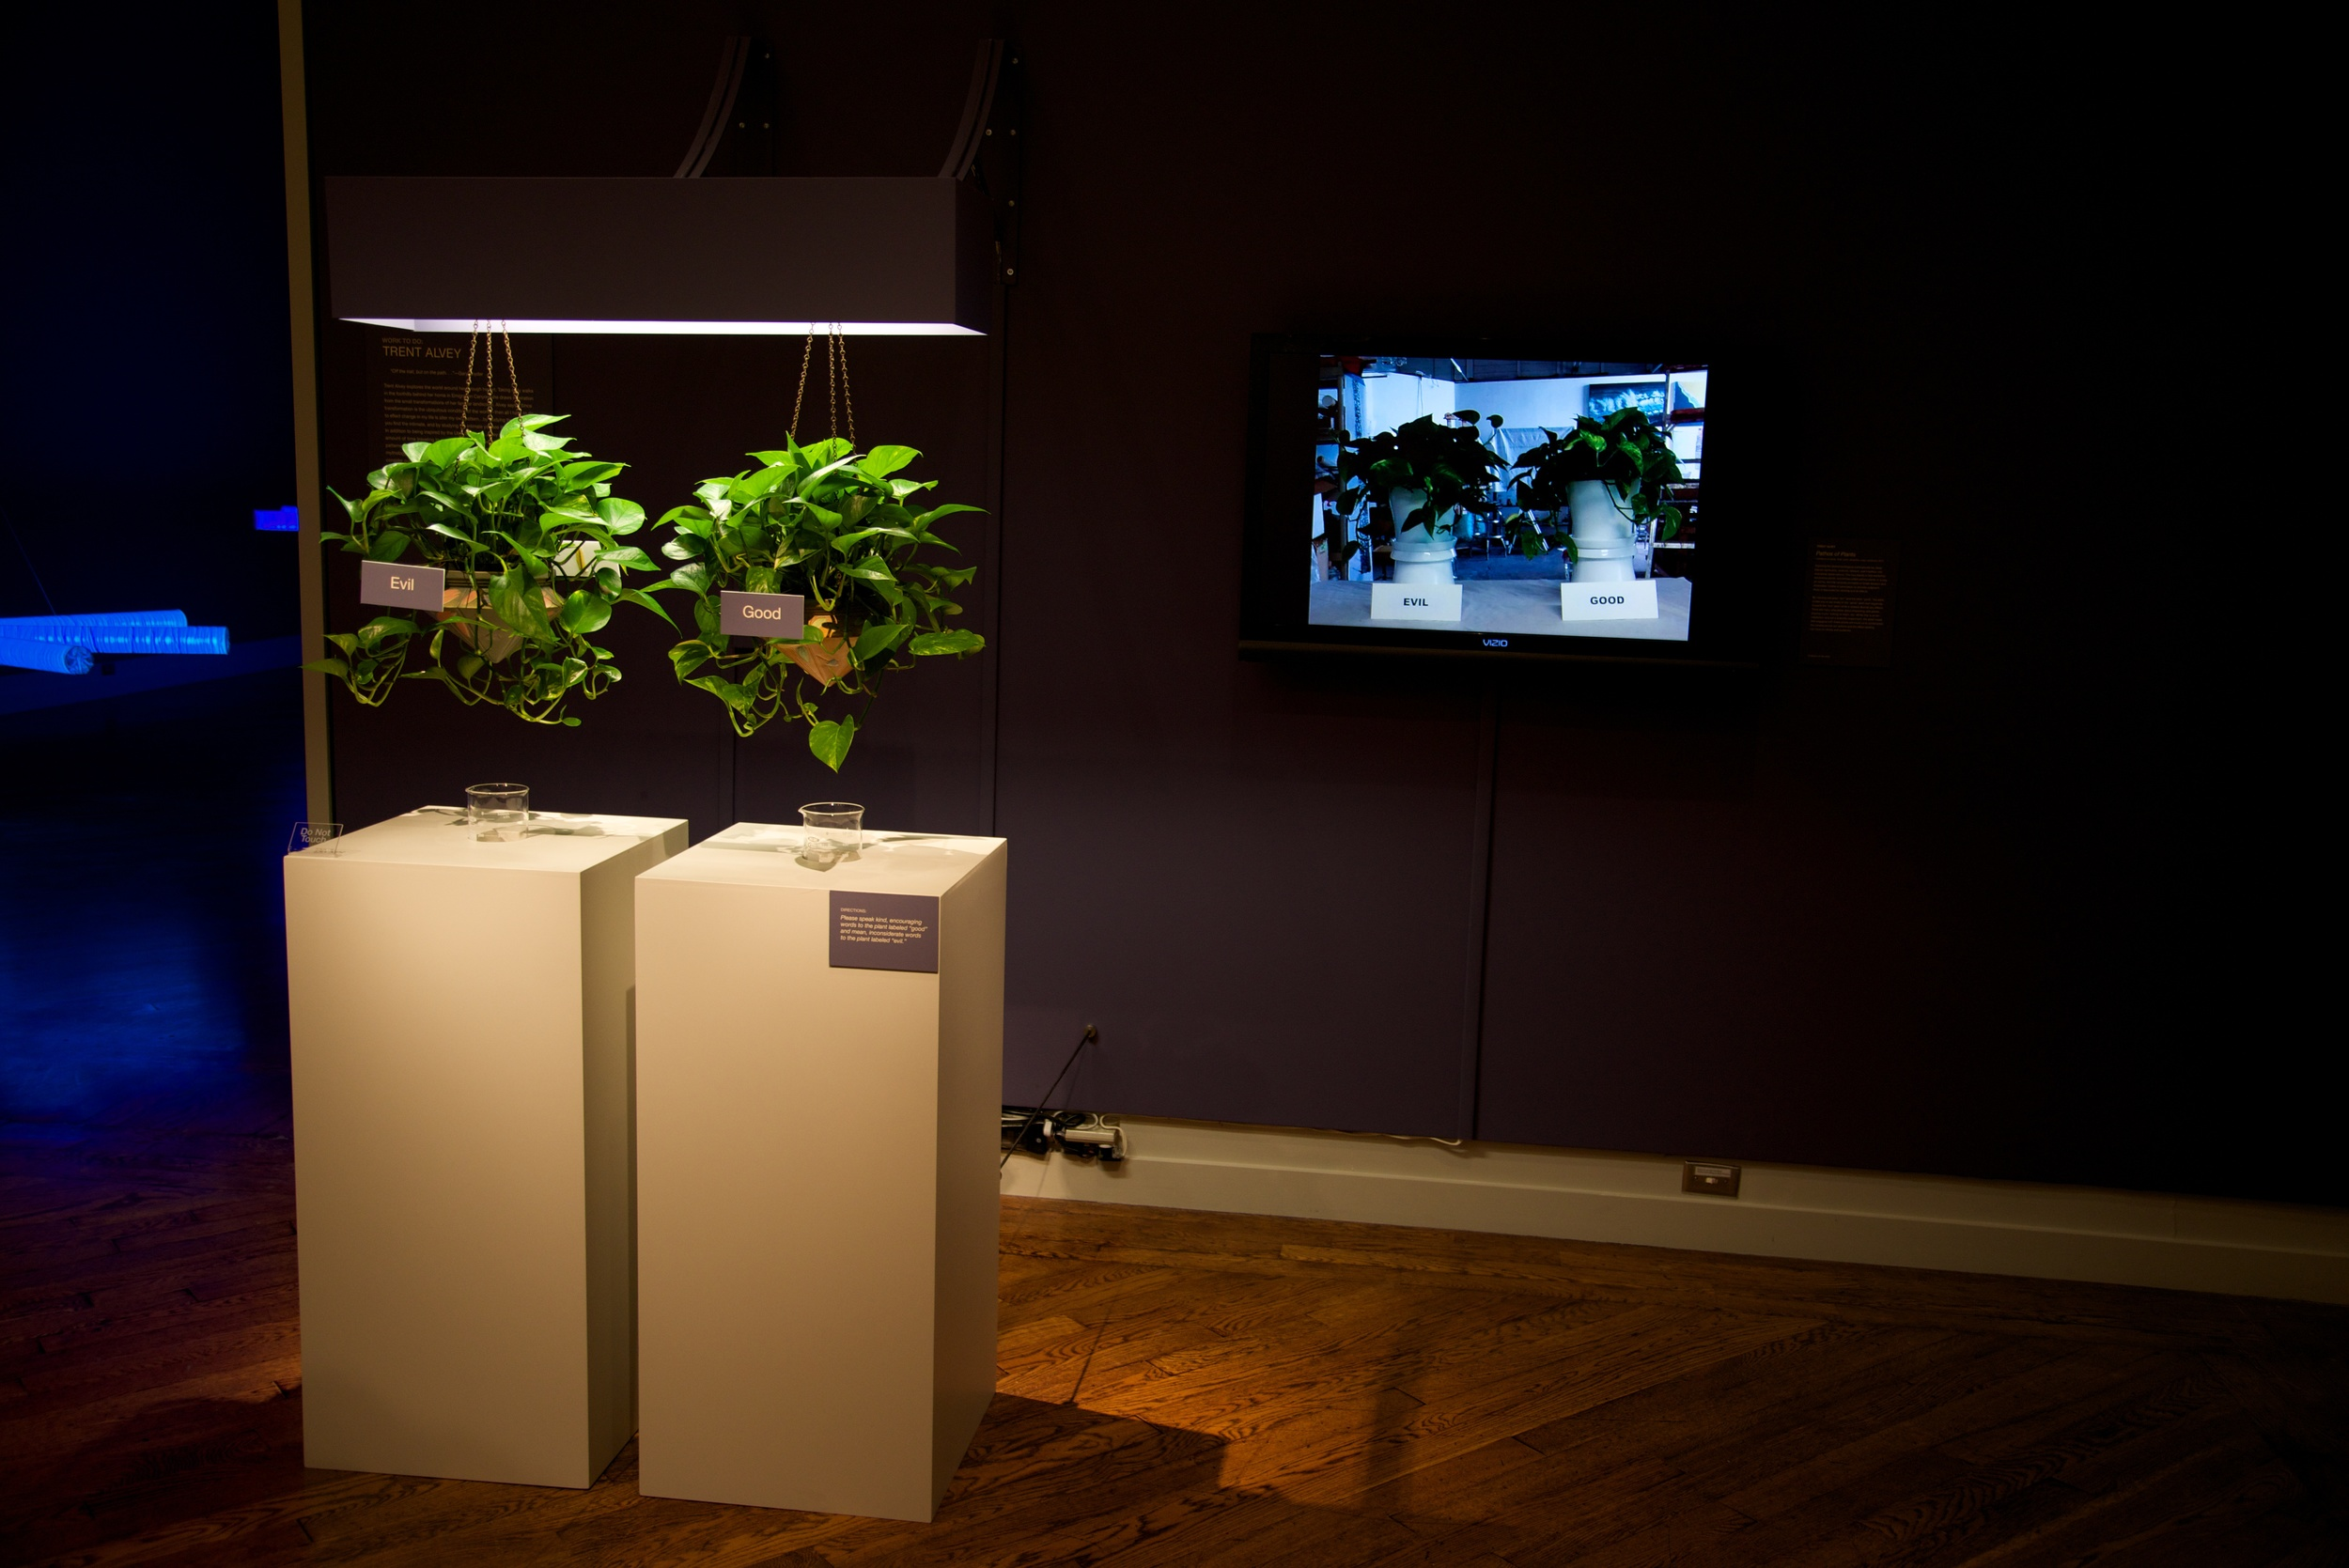 Pathos of Plants: Two Pothos Plants labeled 'Good' and 'Evil' are photographed every hour. The images are compiled into a time lapse video over the four month exhibit period. Positive and negative reinforcement is encouraged.